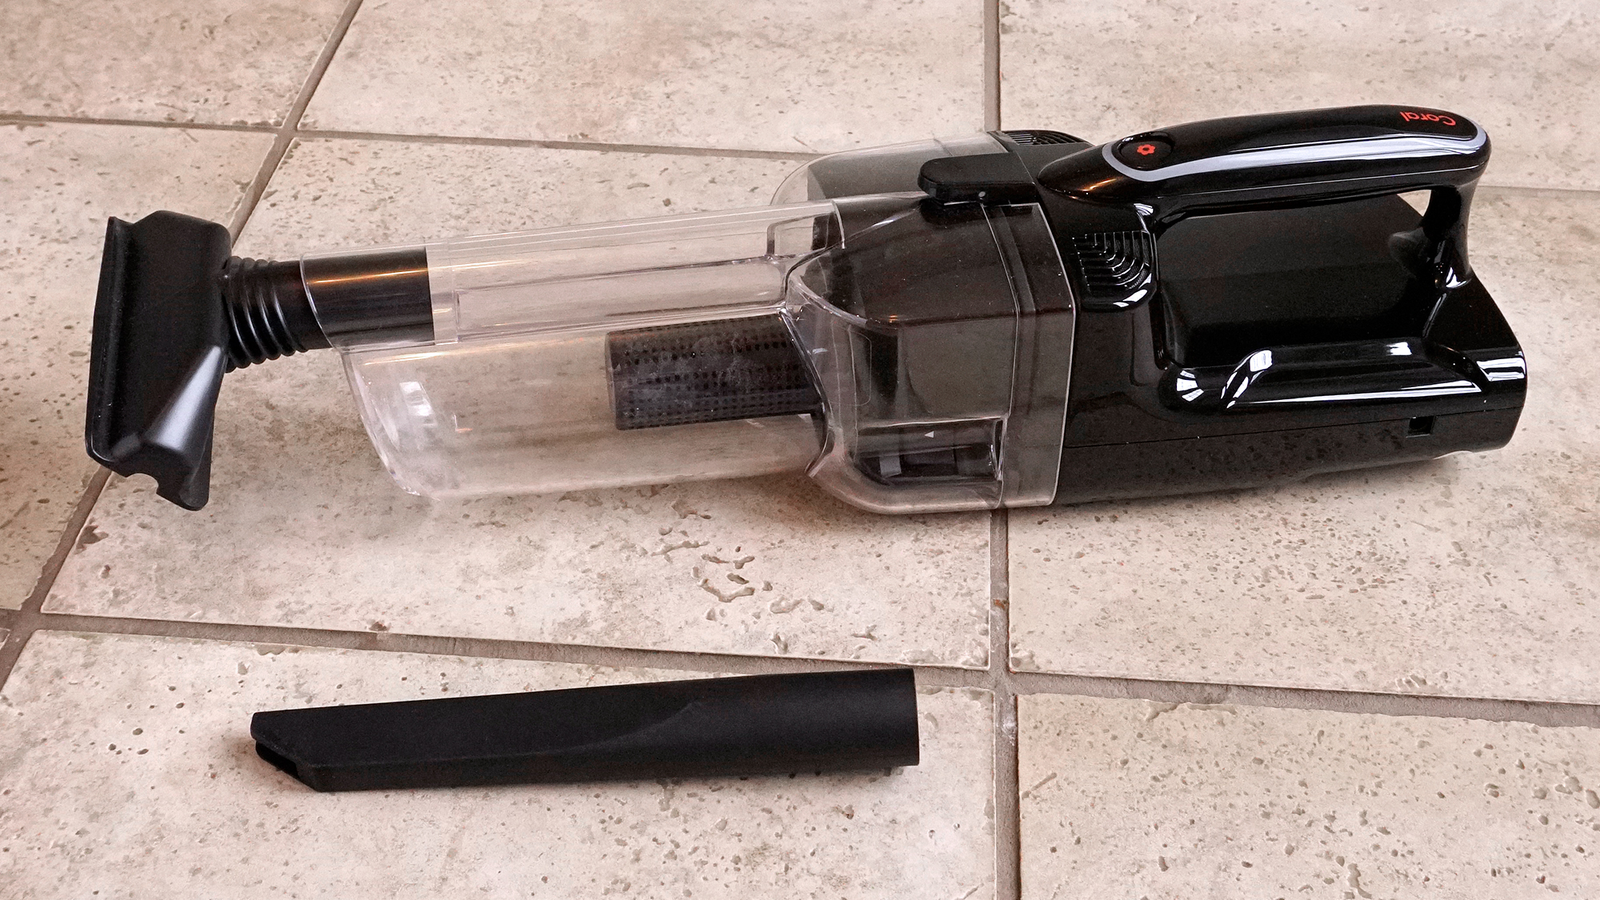 Transforming the Coral One's guts into a handvac is as easy as snapping on a couple of included accessories.